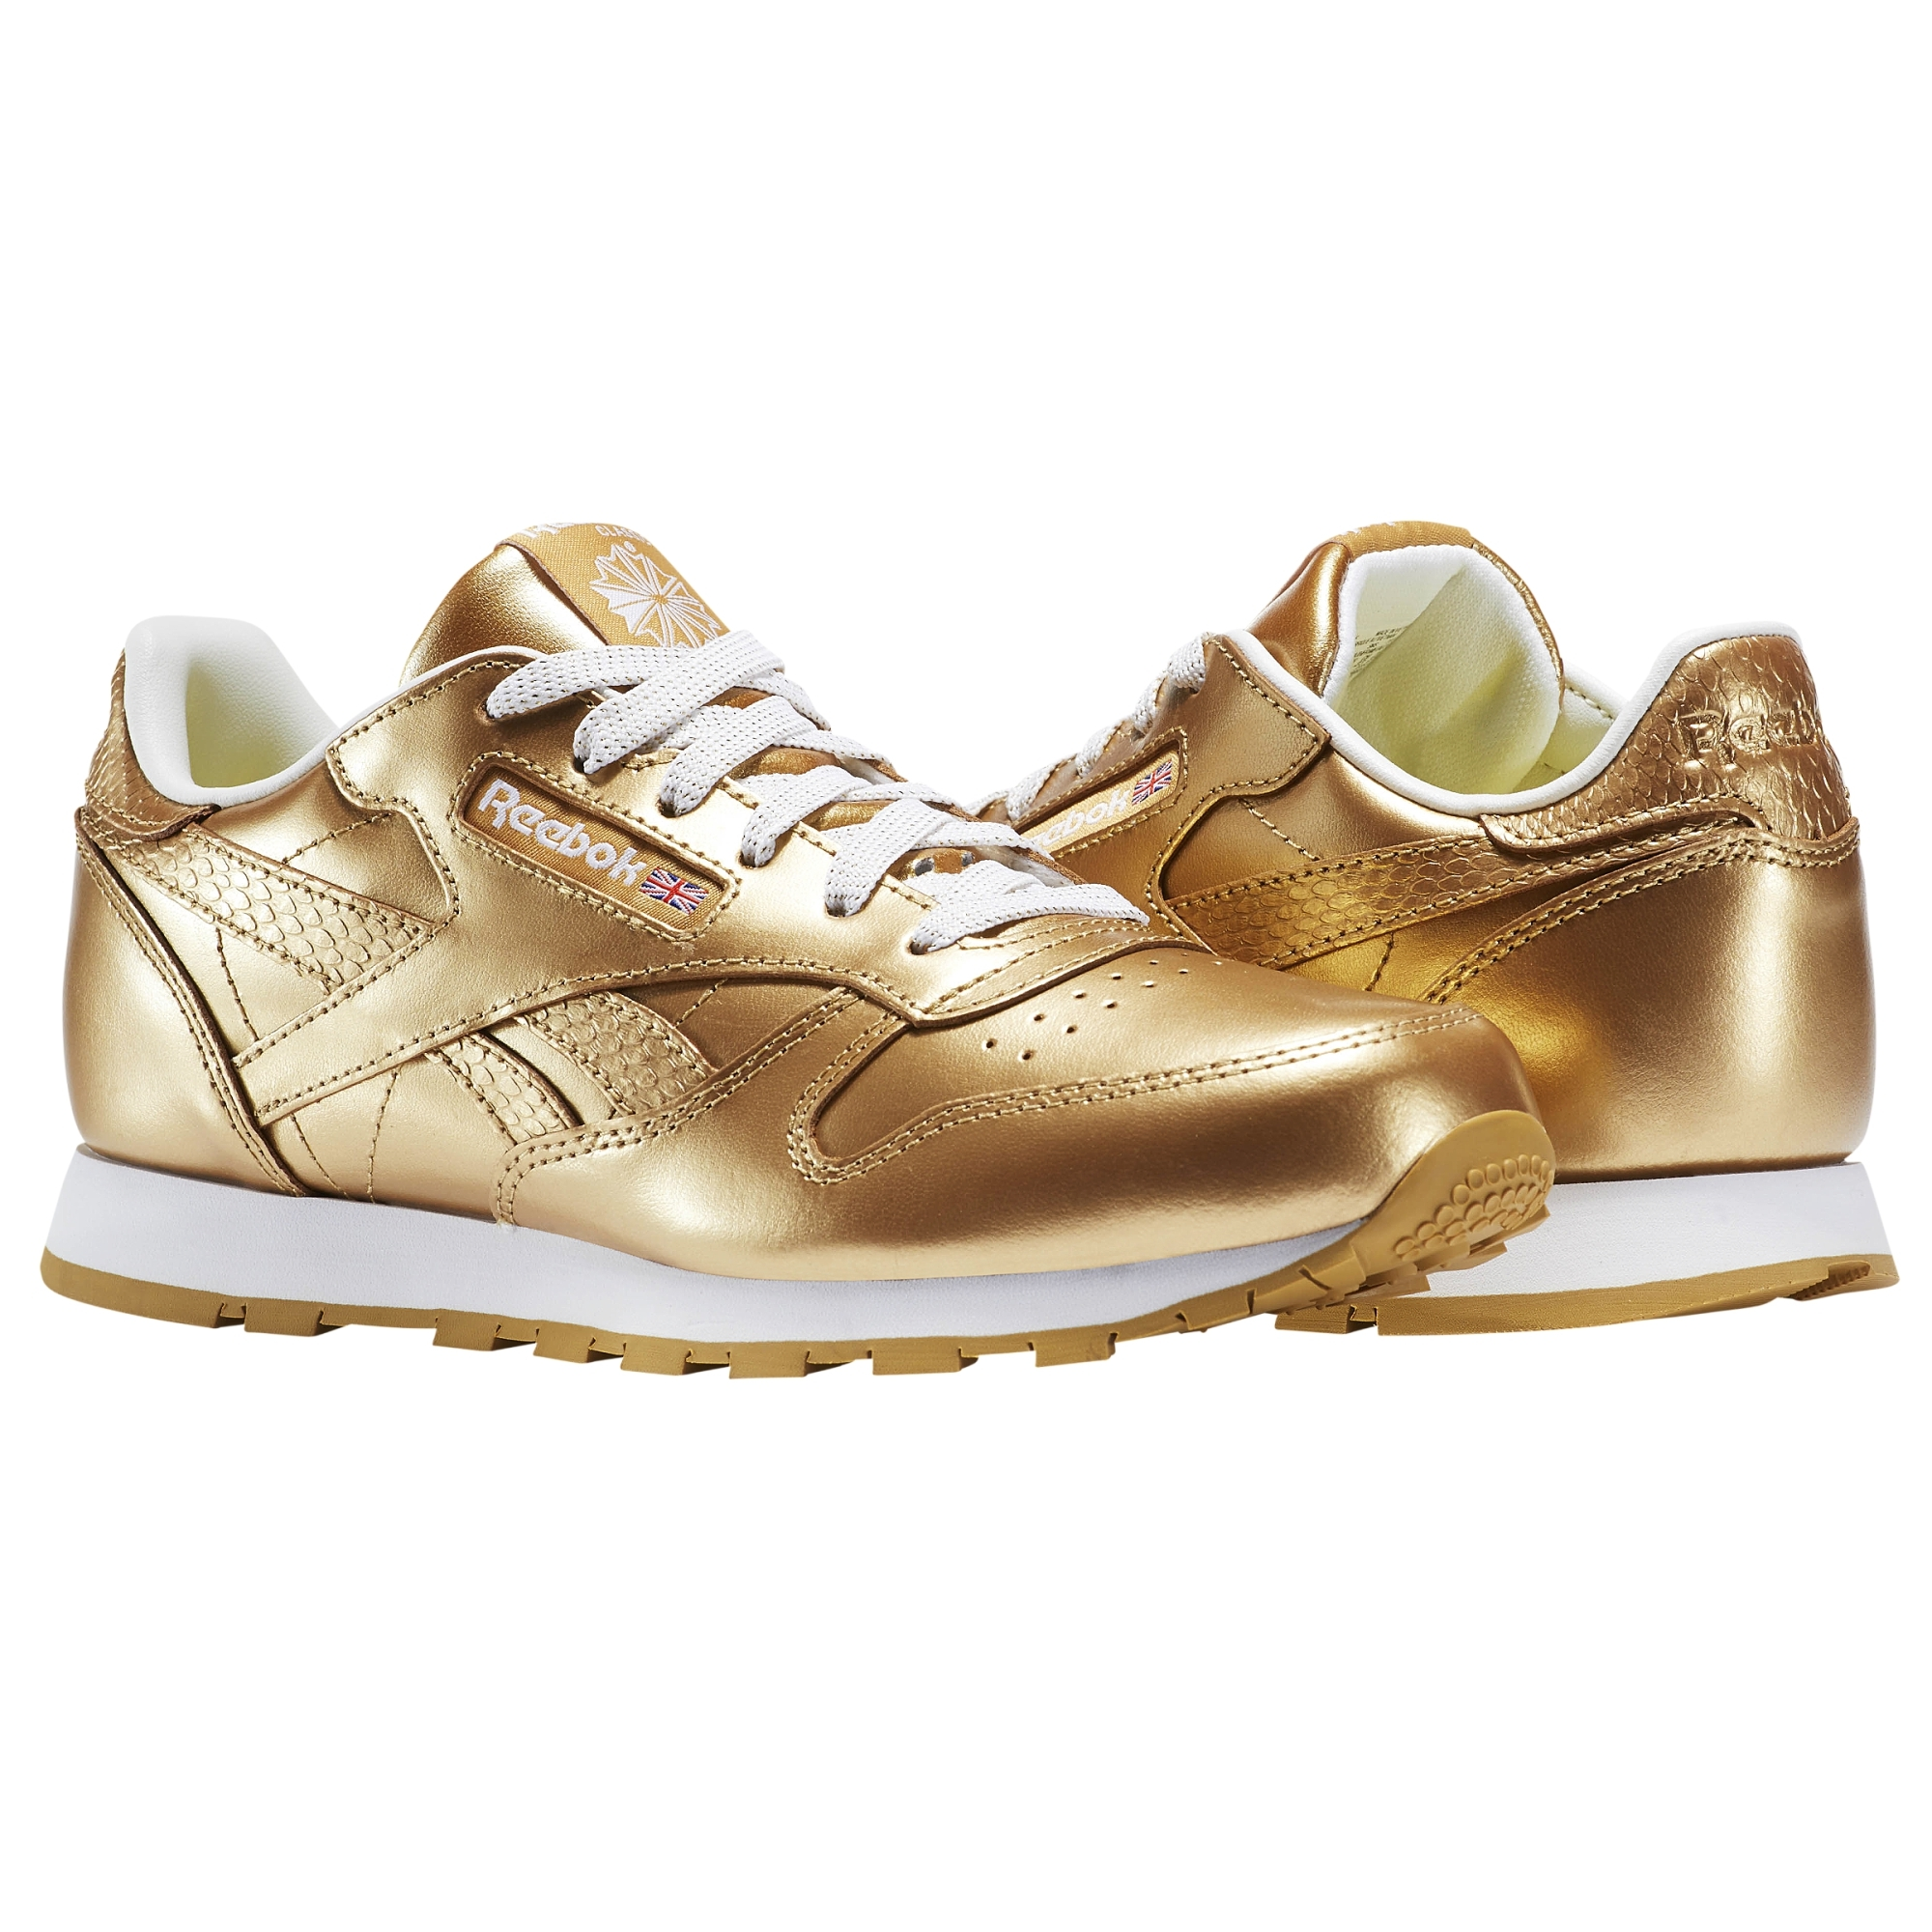 7871745e6a7 ... buty Reebok Classic Leather Metallic BS8944 ...